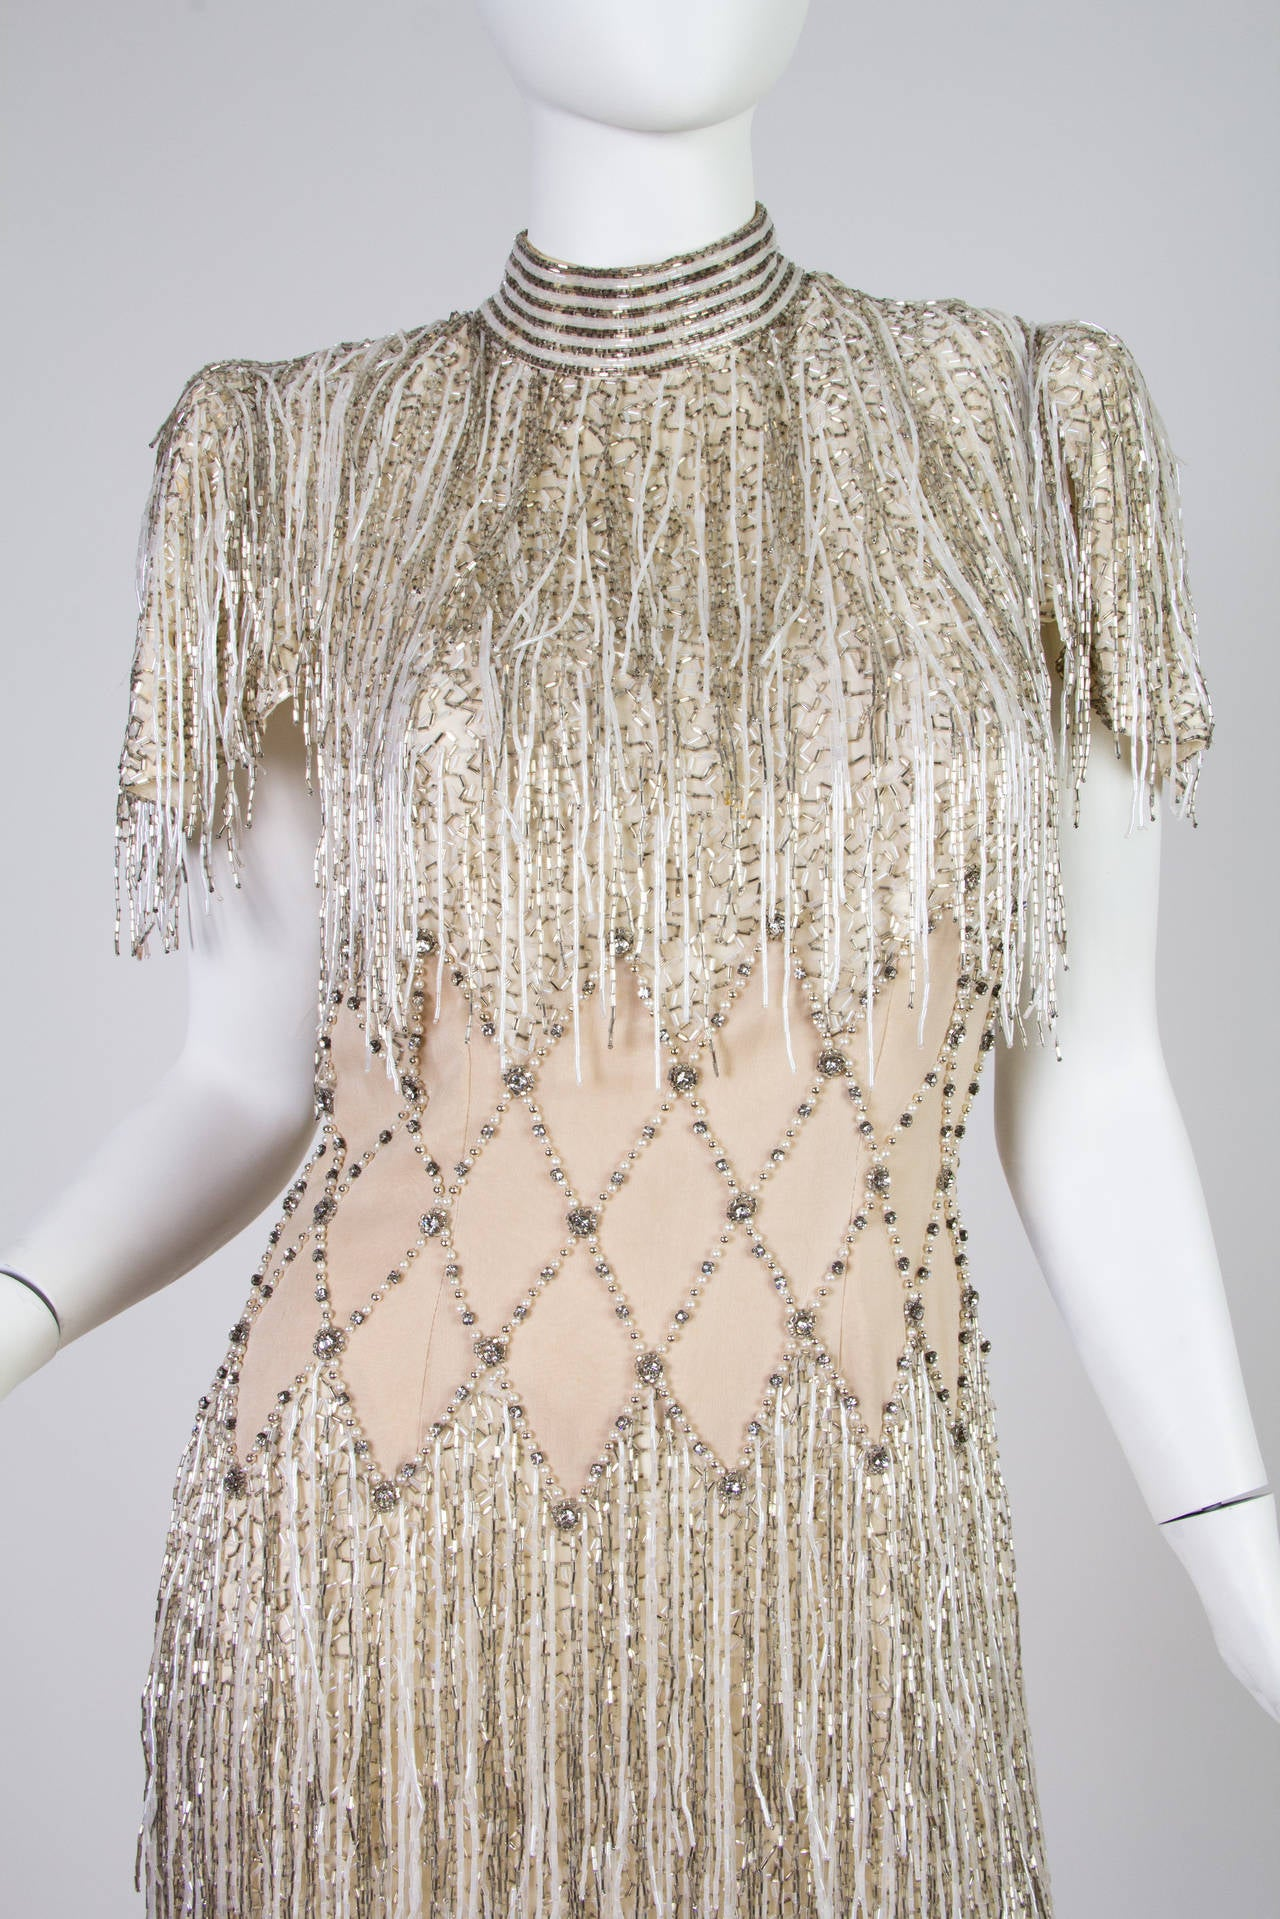 Spectacular Beaded Fringe Dress 5